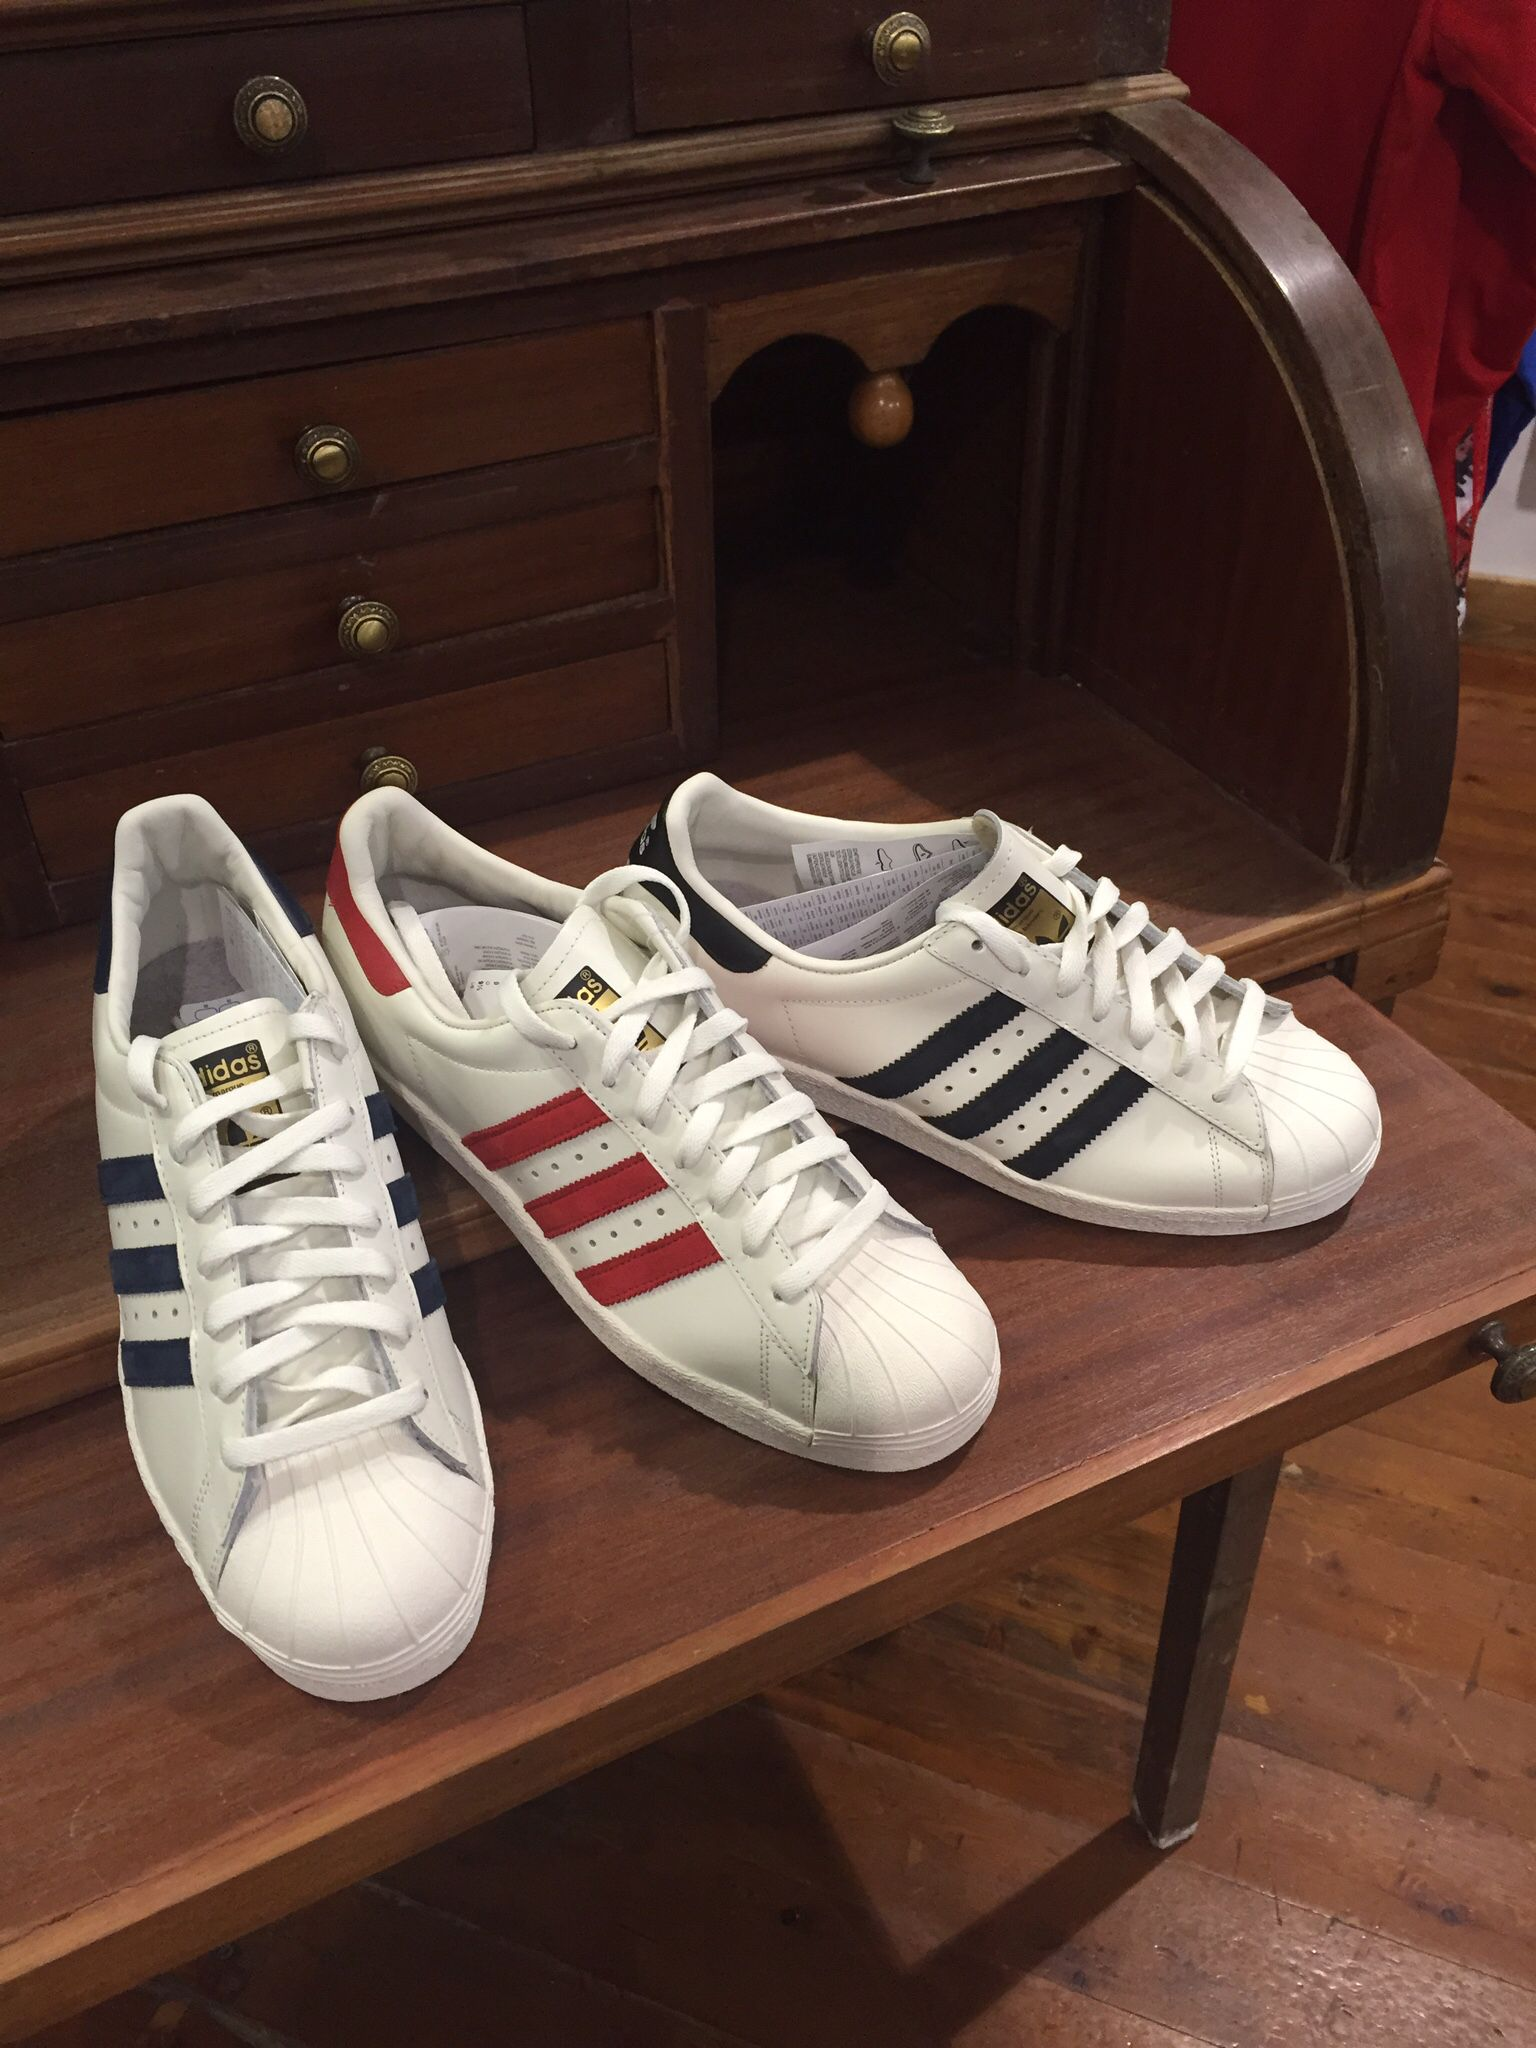 Unisex Adidas Superstar 80s Vintage Deluxe Vintage Collegiate Off Shoes Green White Lovely Payment